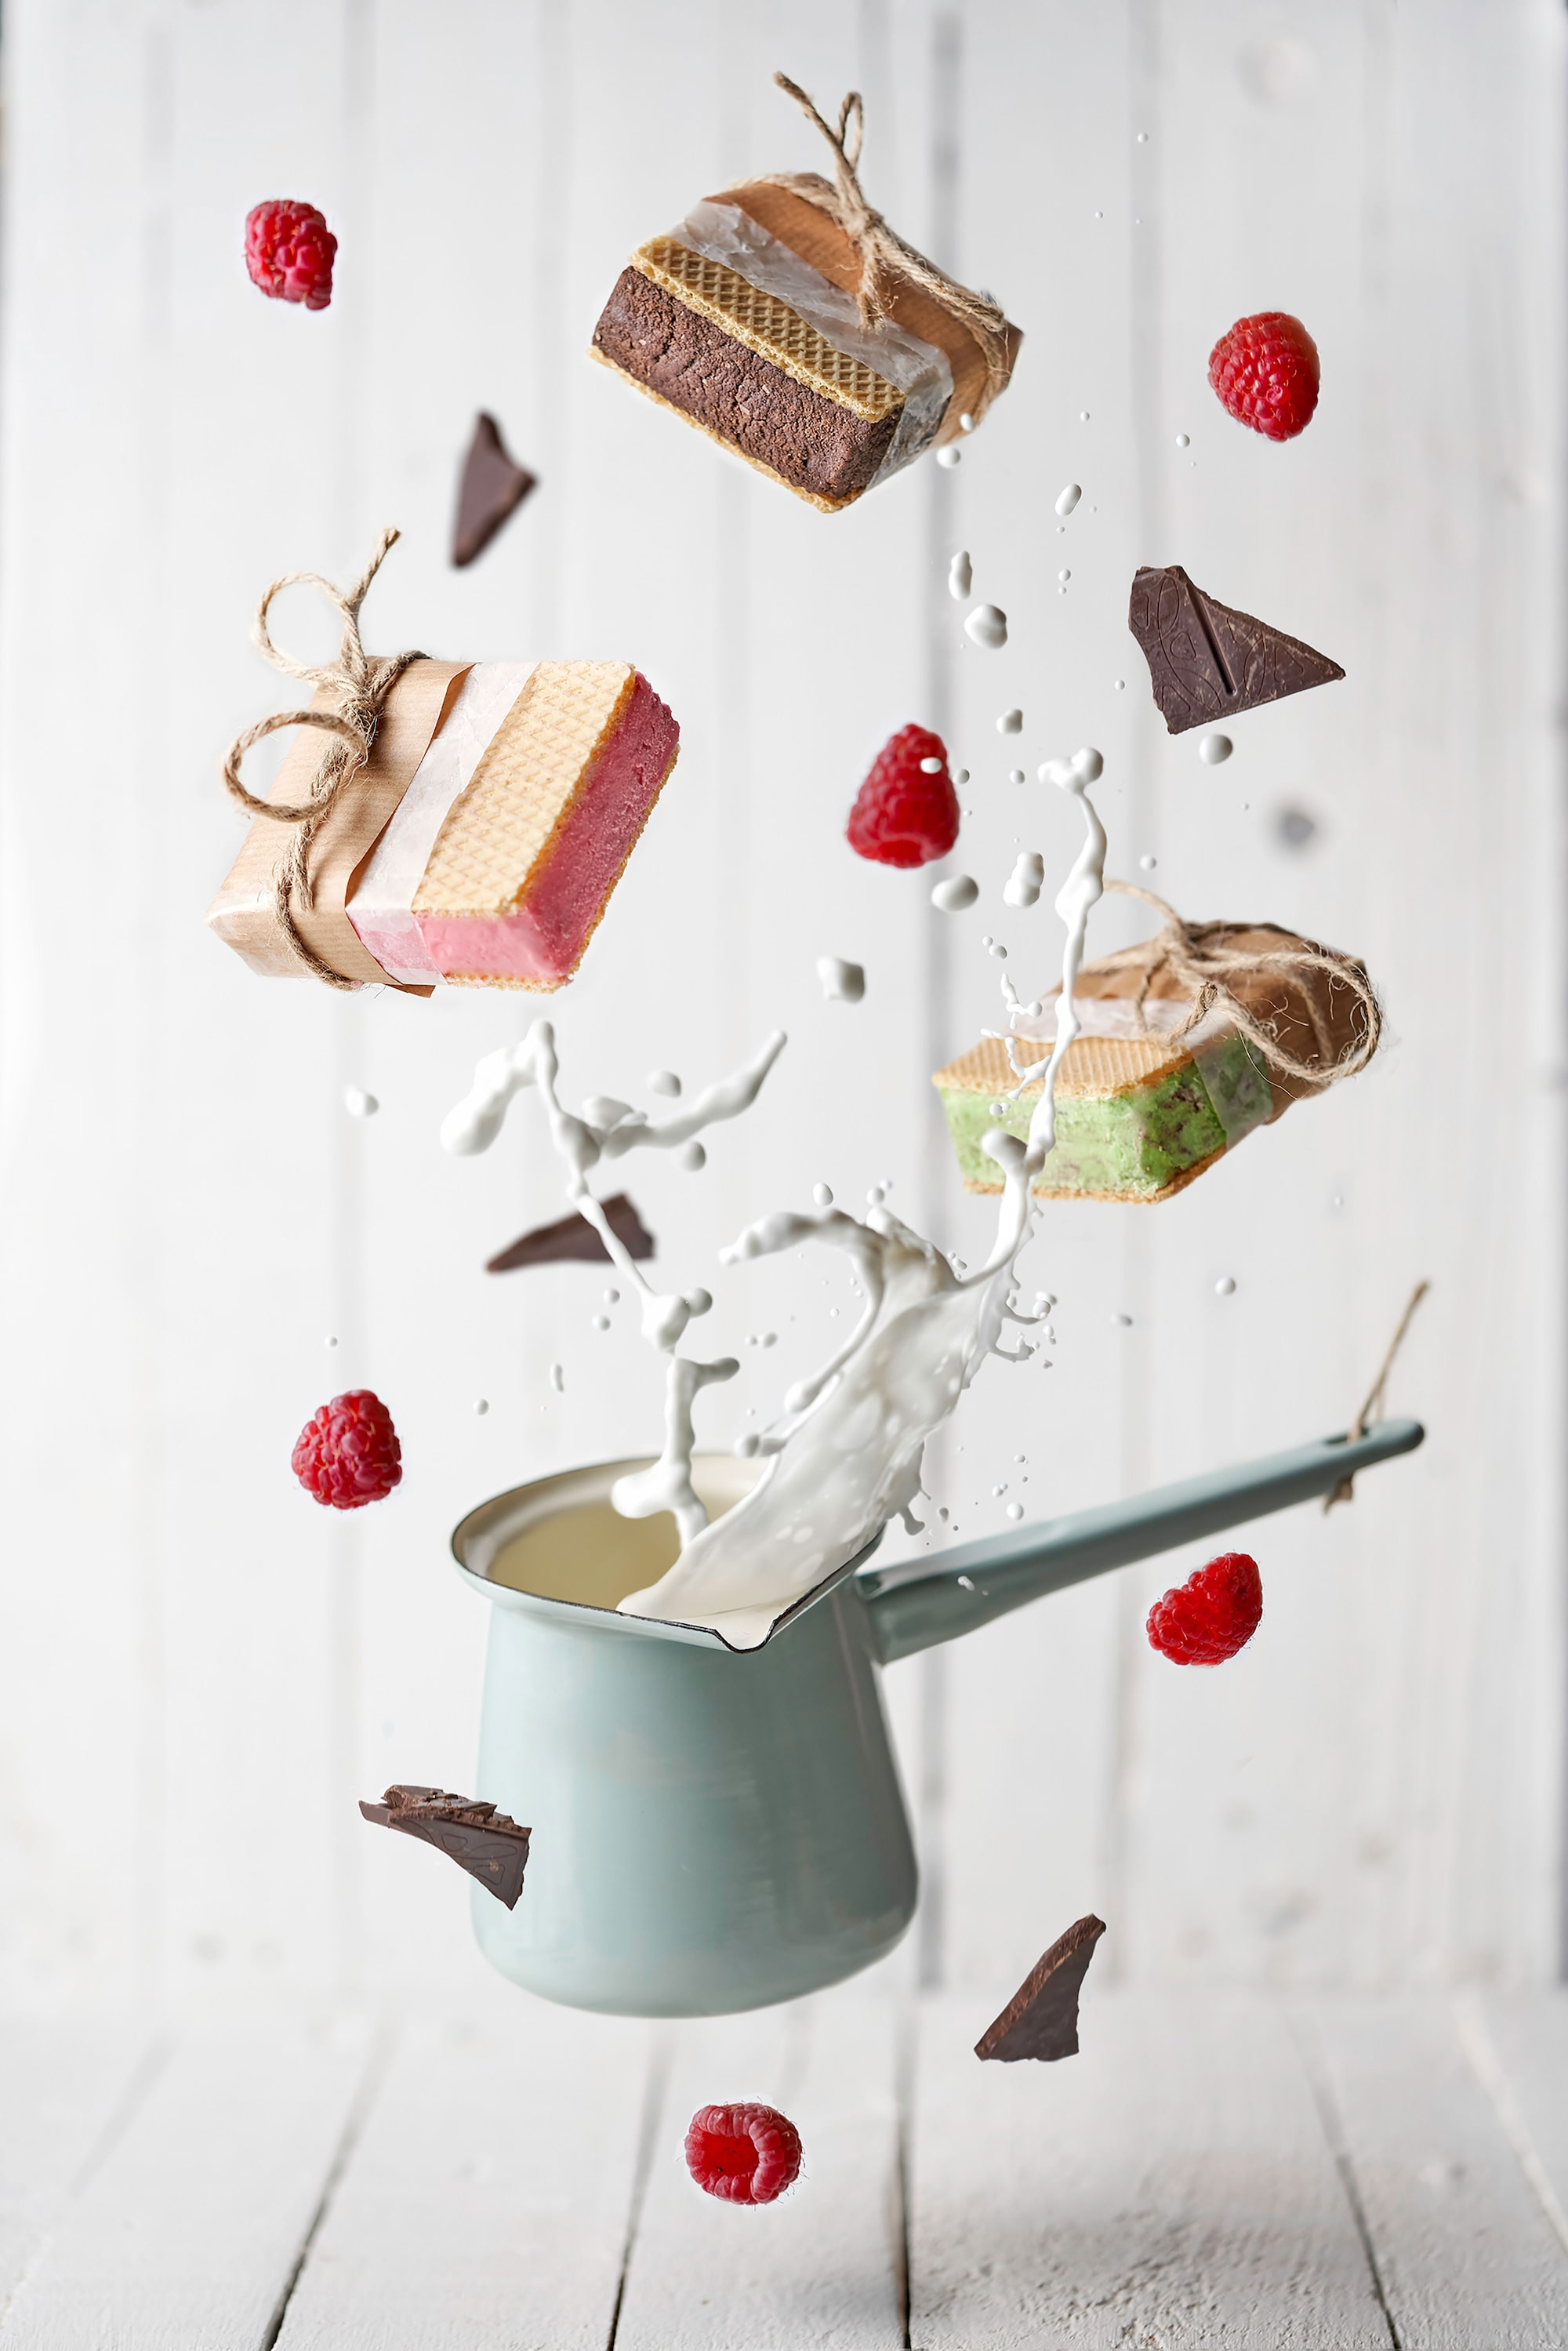 pablo gil sony alpha 7RIII pan of milk suspended in mid air with cake floating around